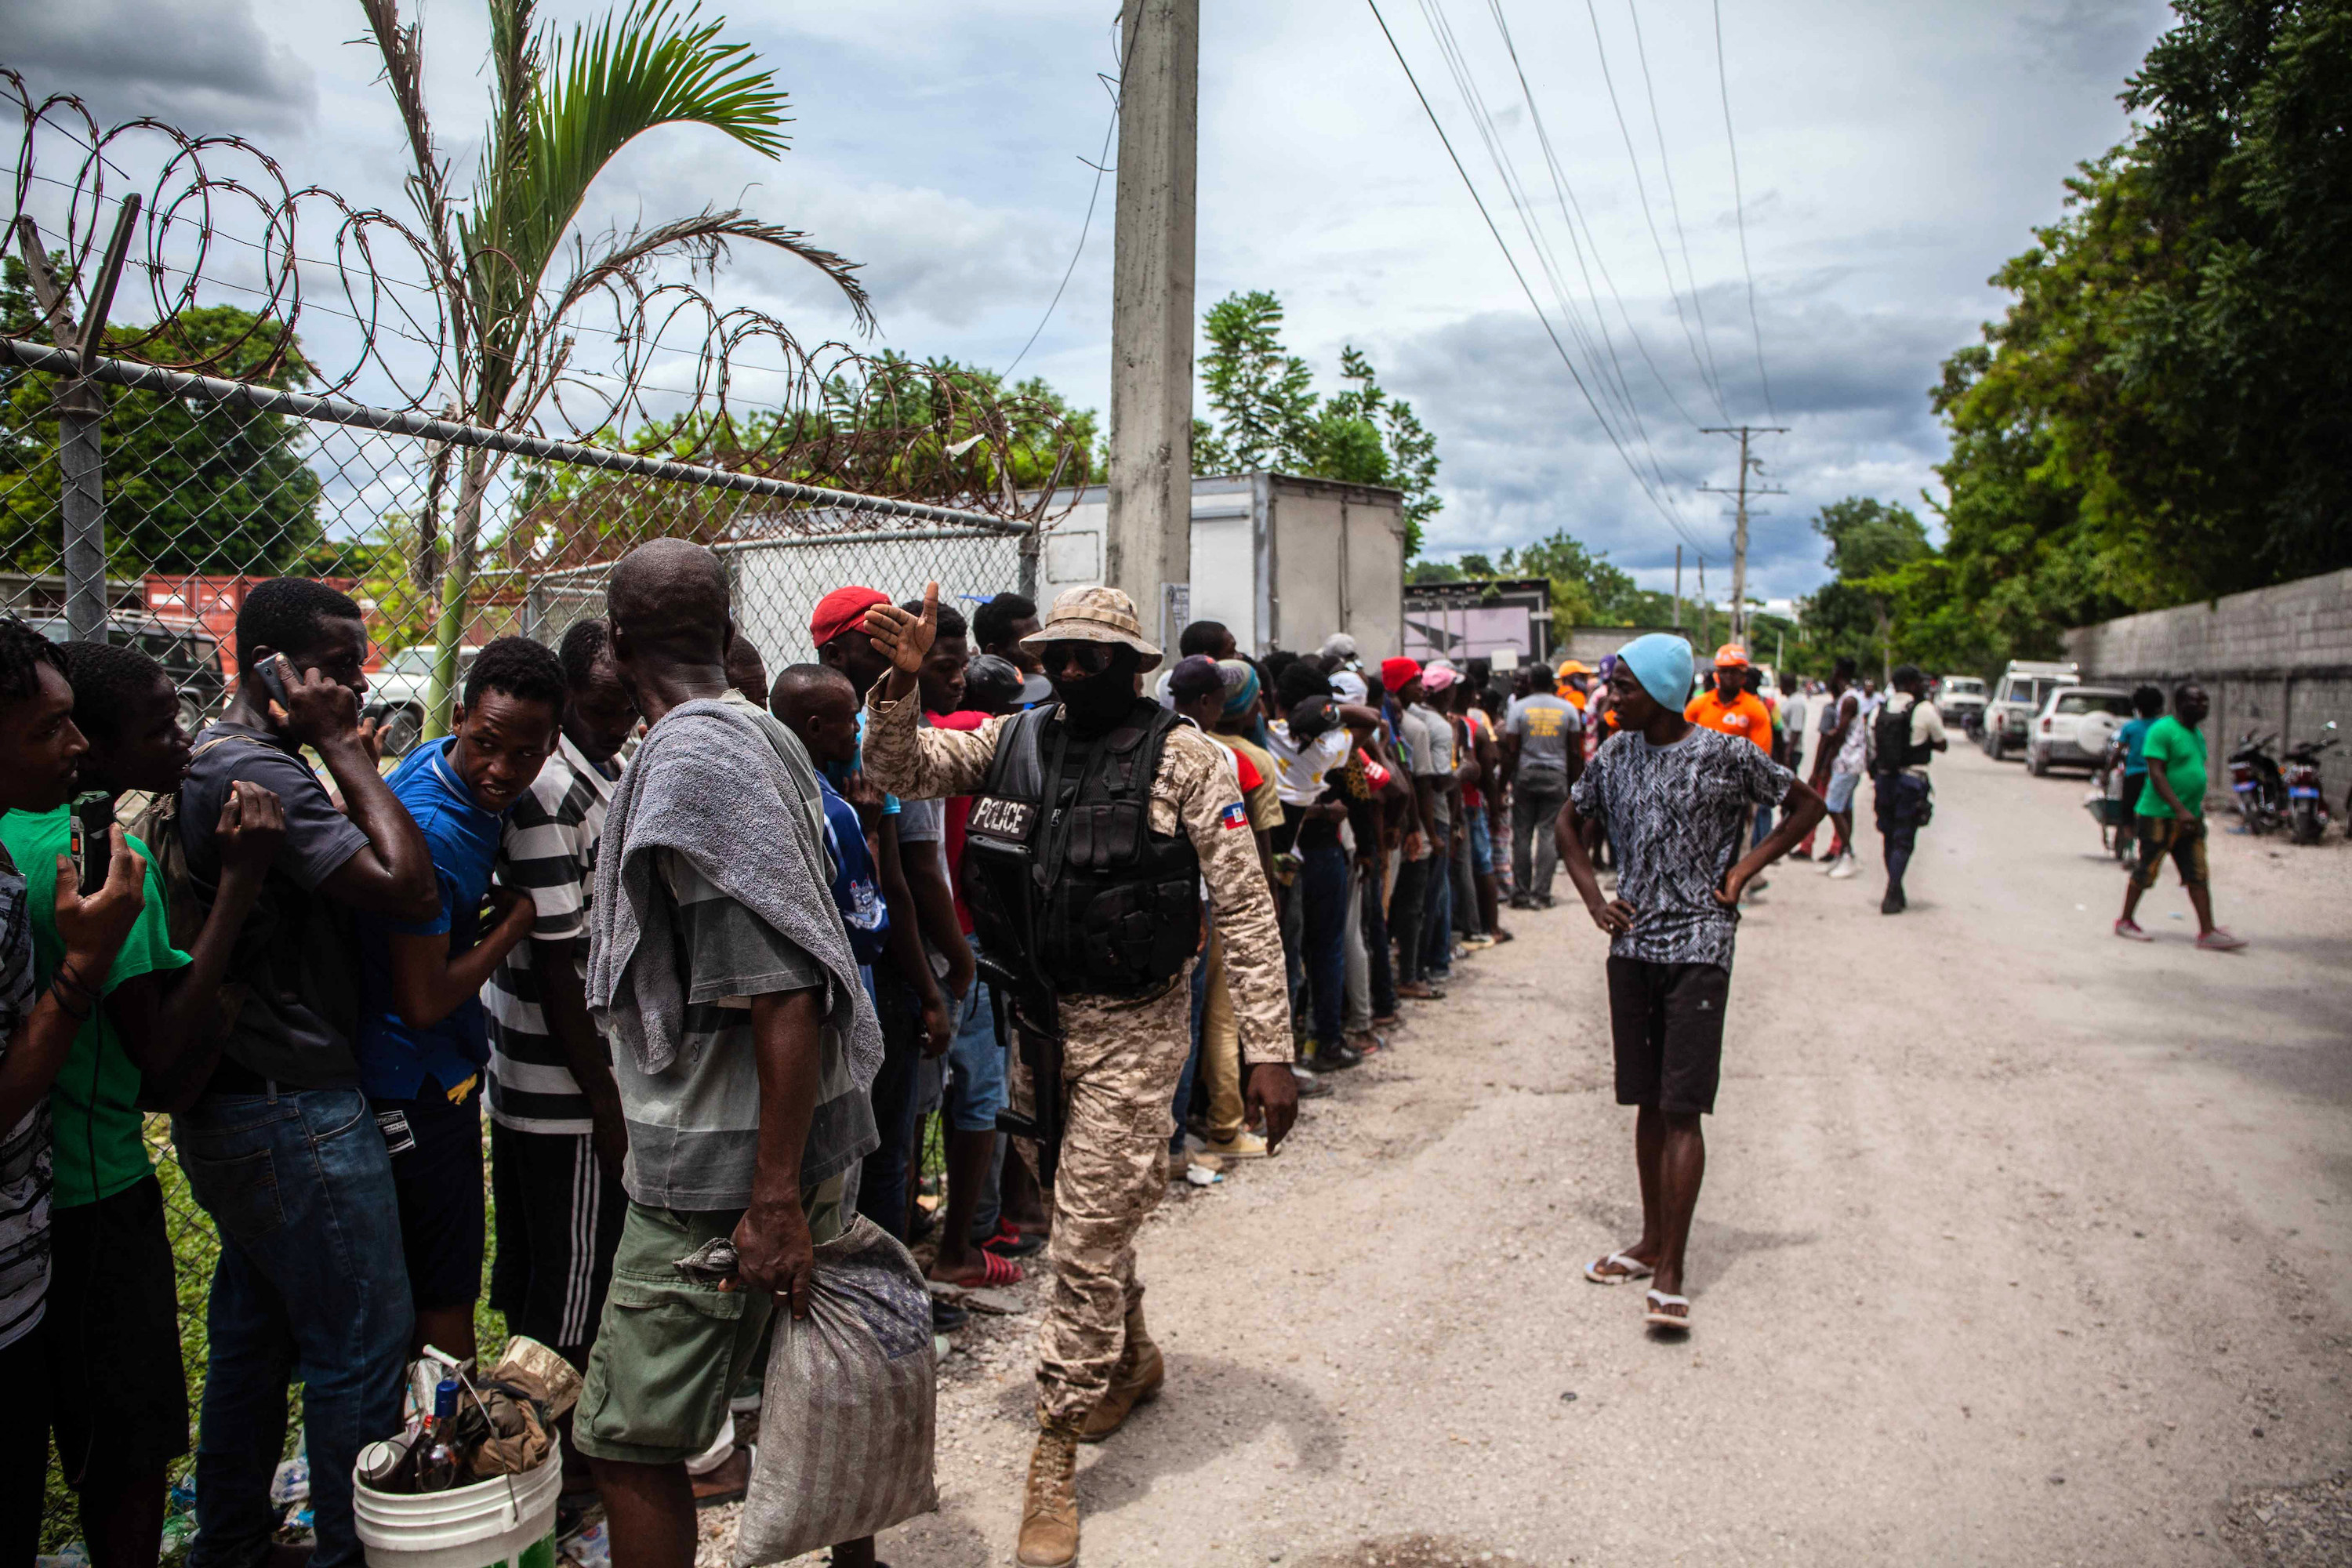 Haitian residents wait in line for food as a police officer walks by